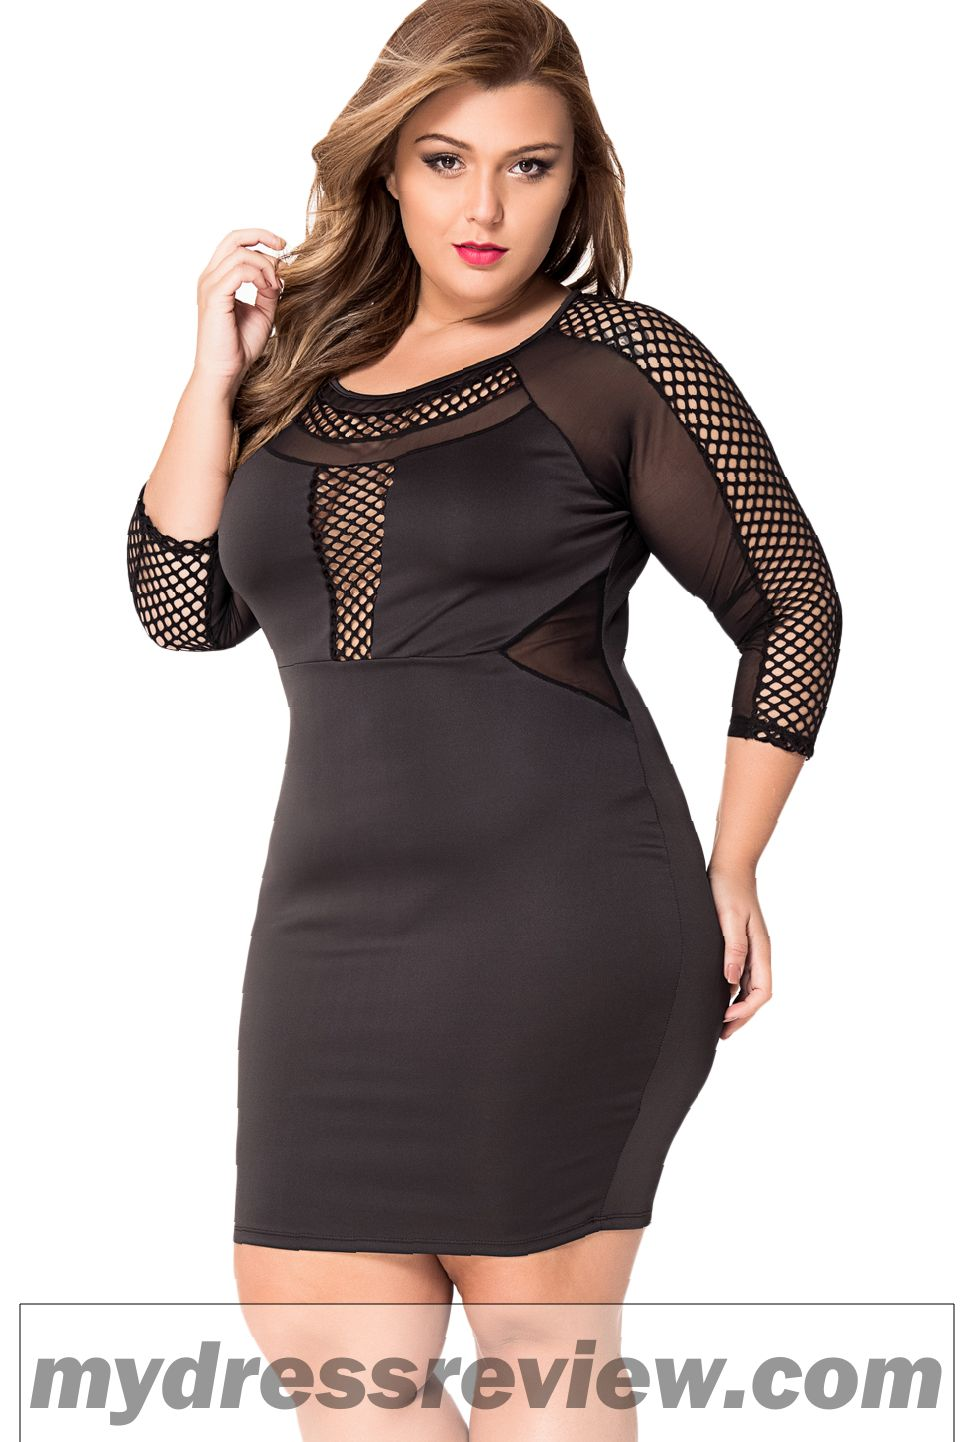 Long Sleeve Plus Size Bodycon Dress Fashion Show Collection